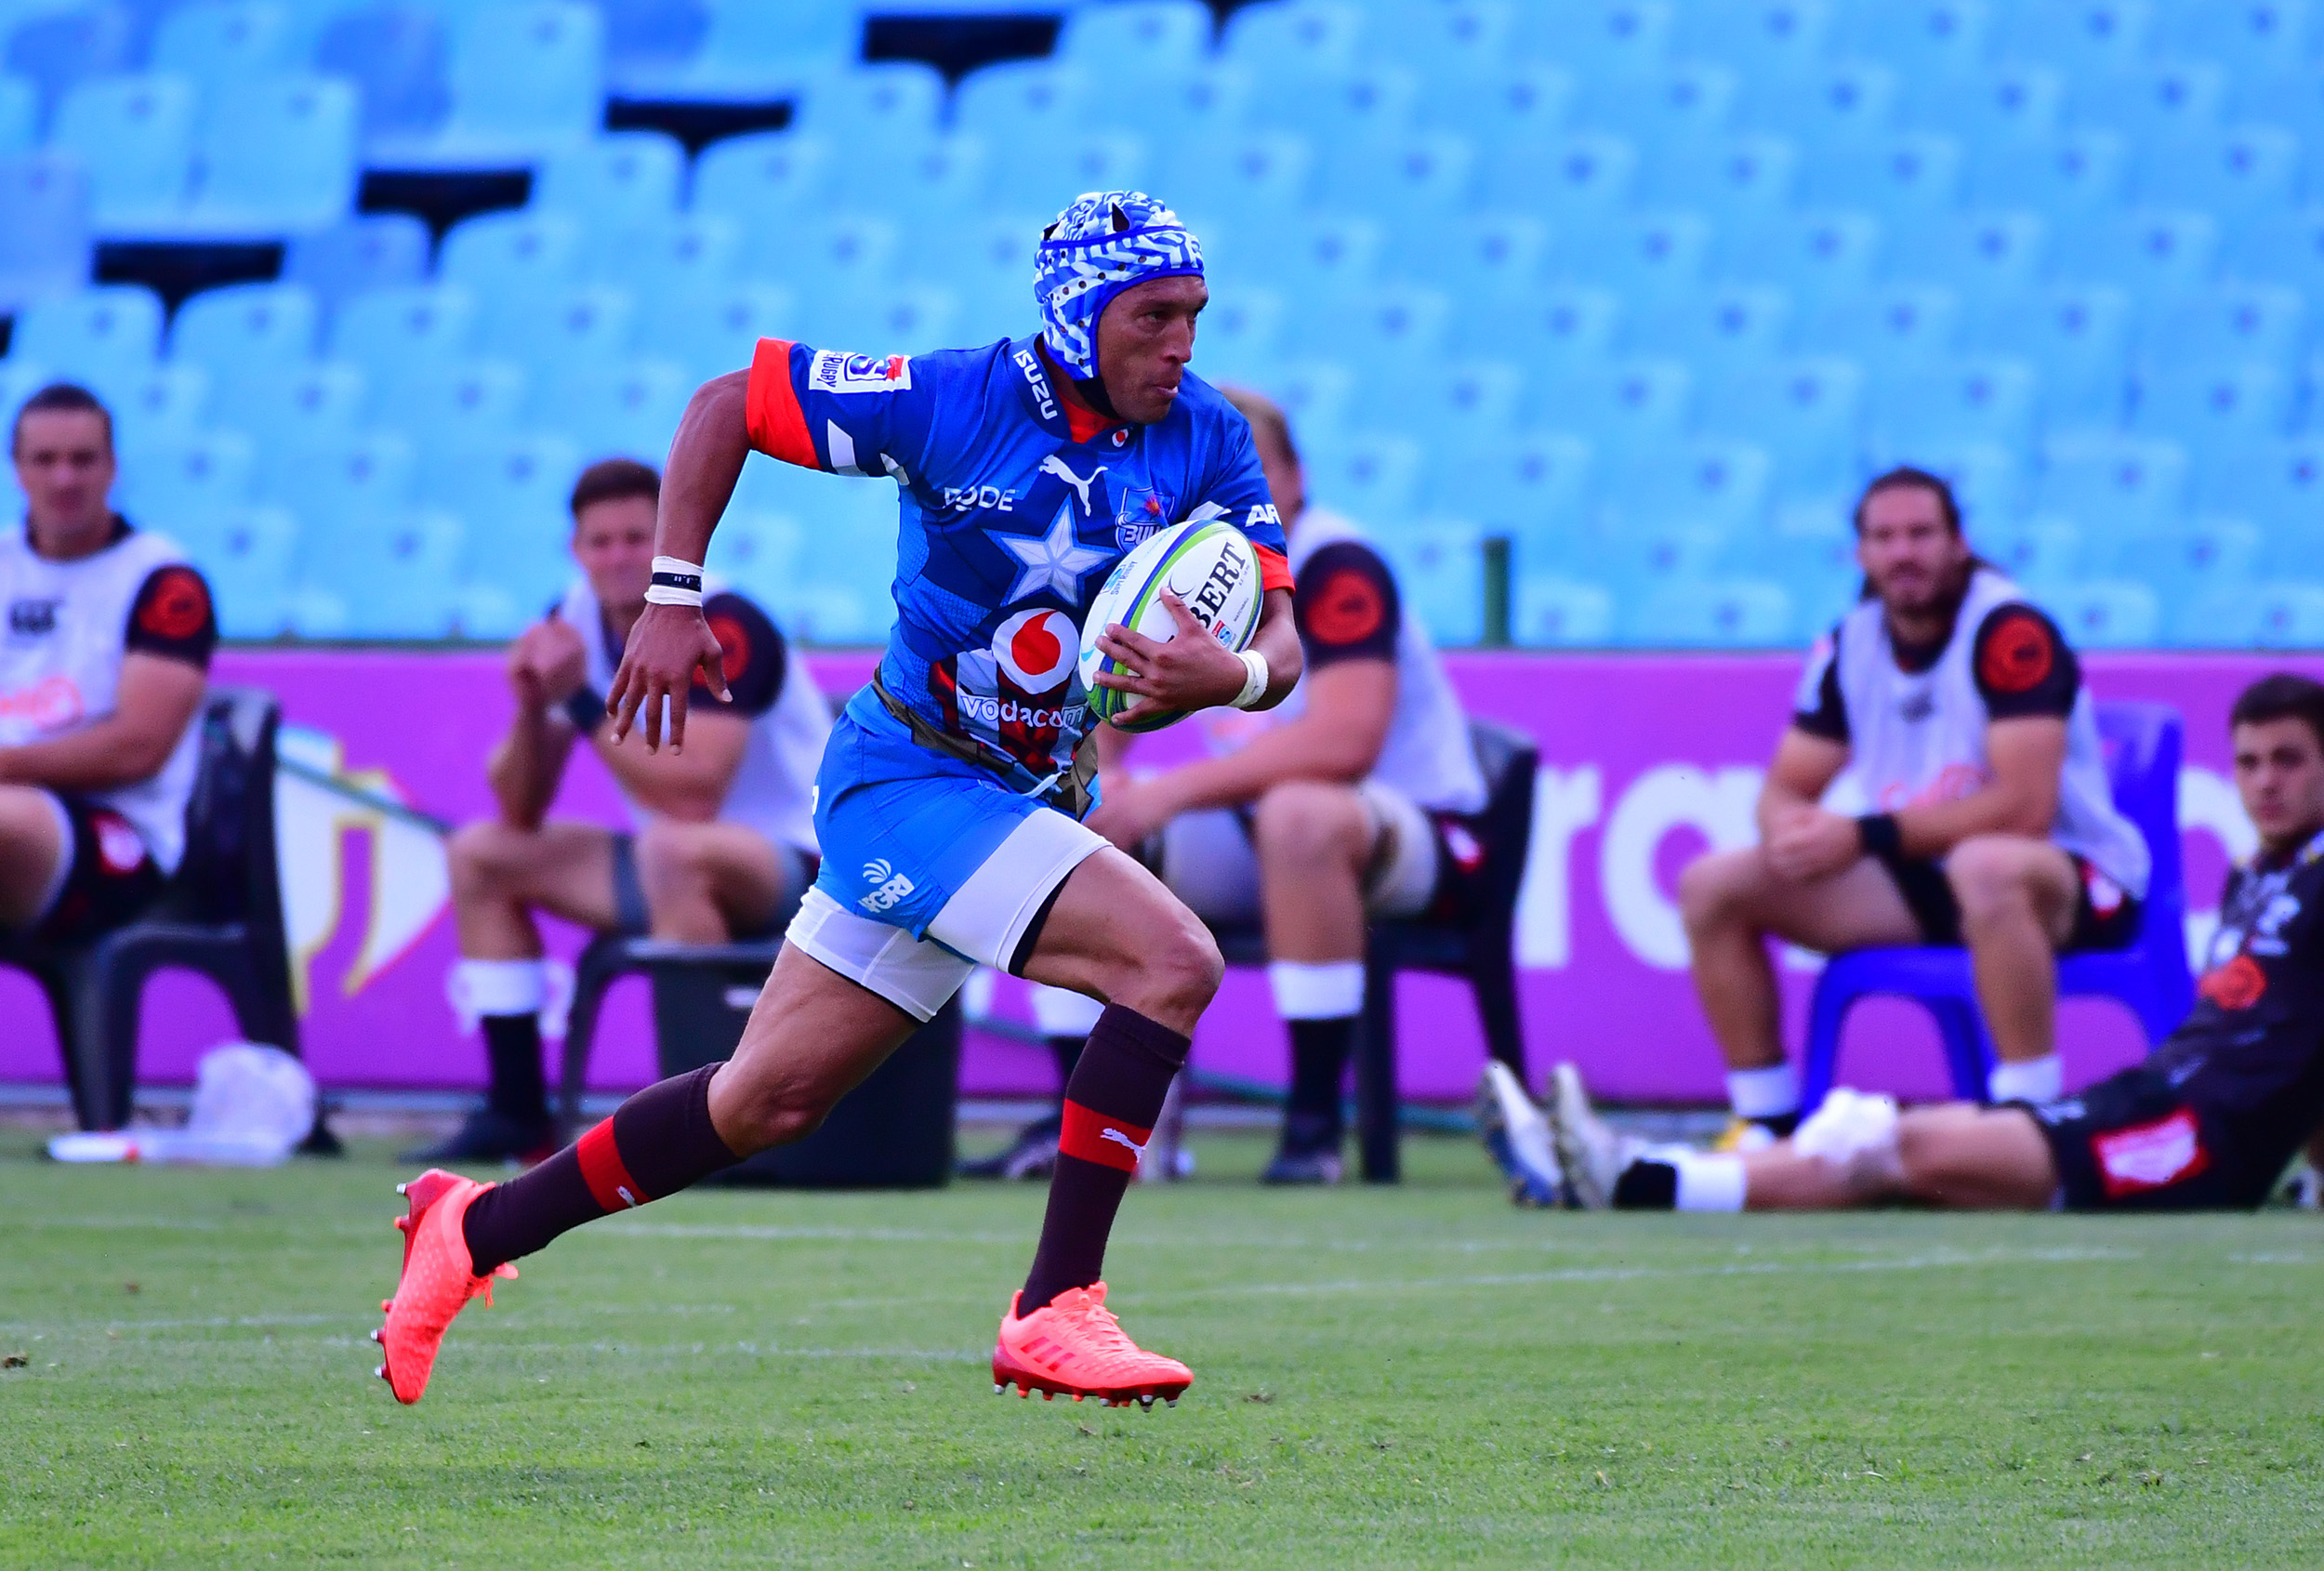 A Tribute to 25 years of Vodacom Super Rugby